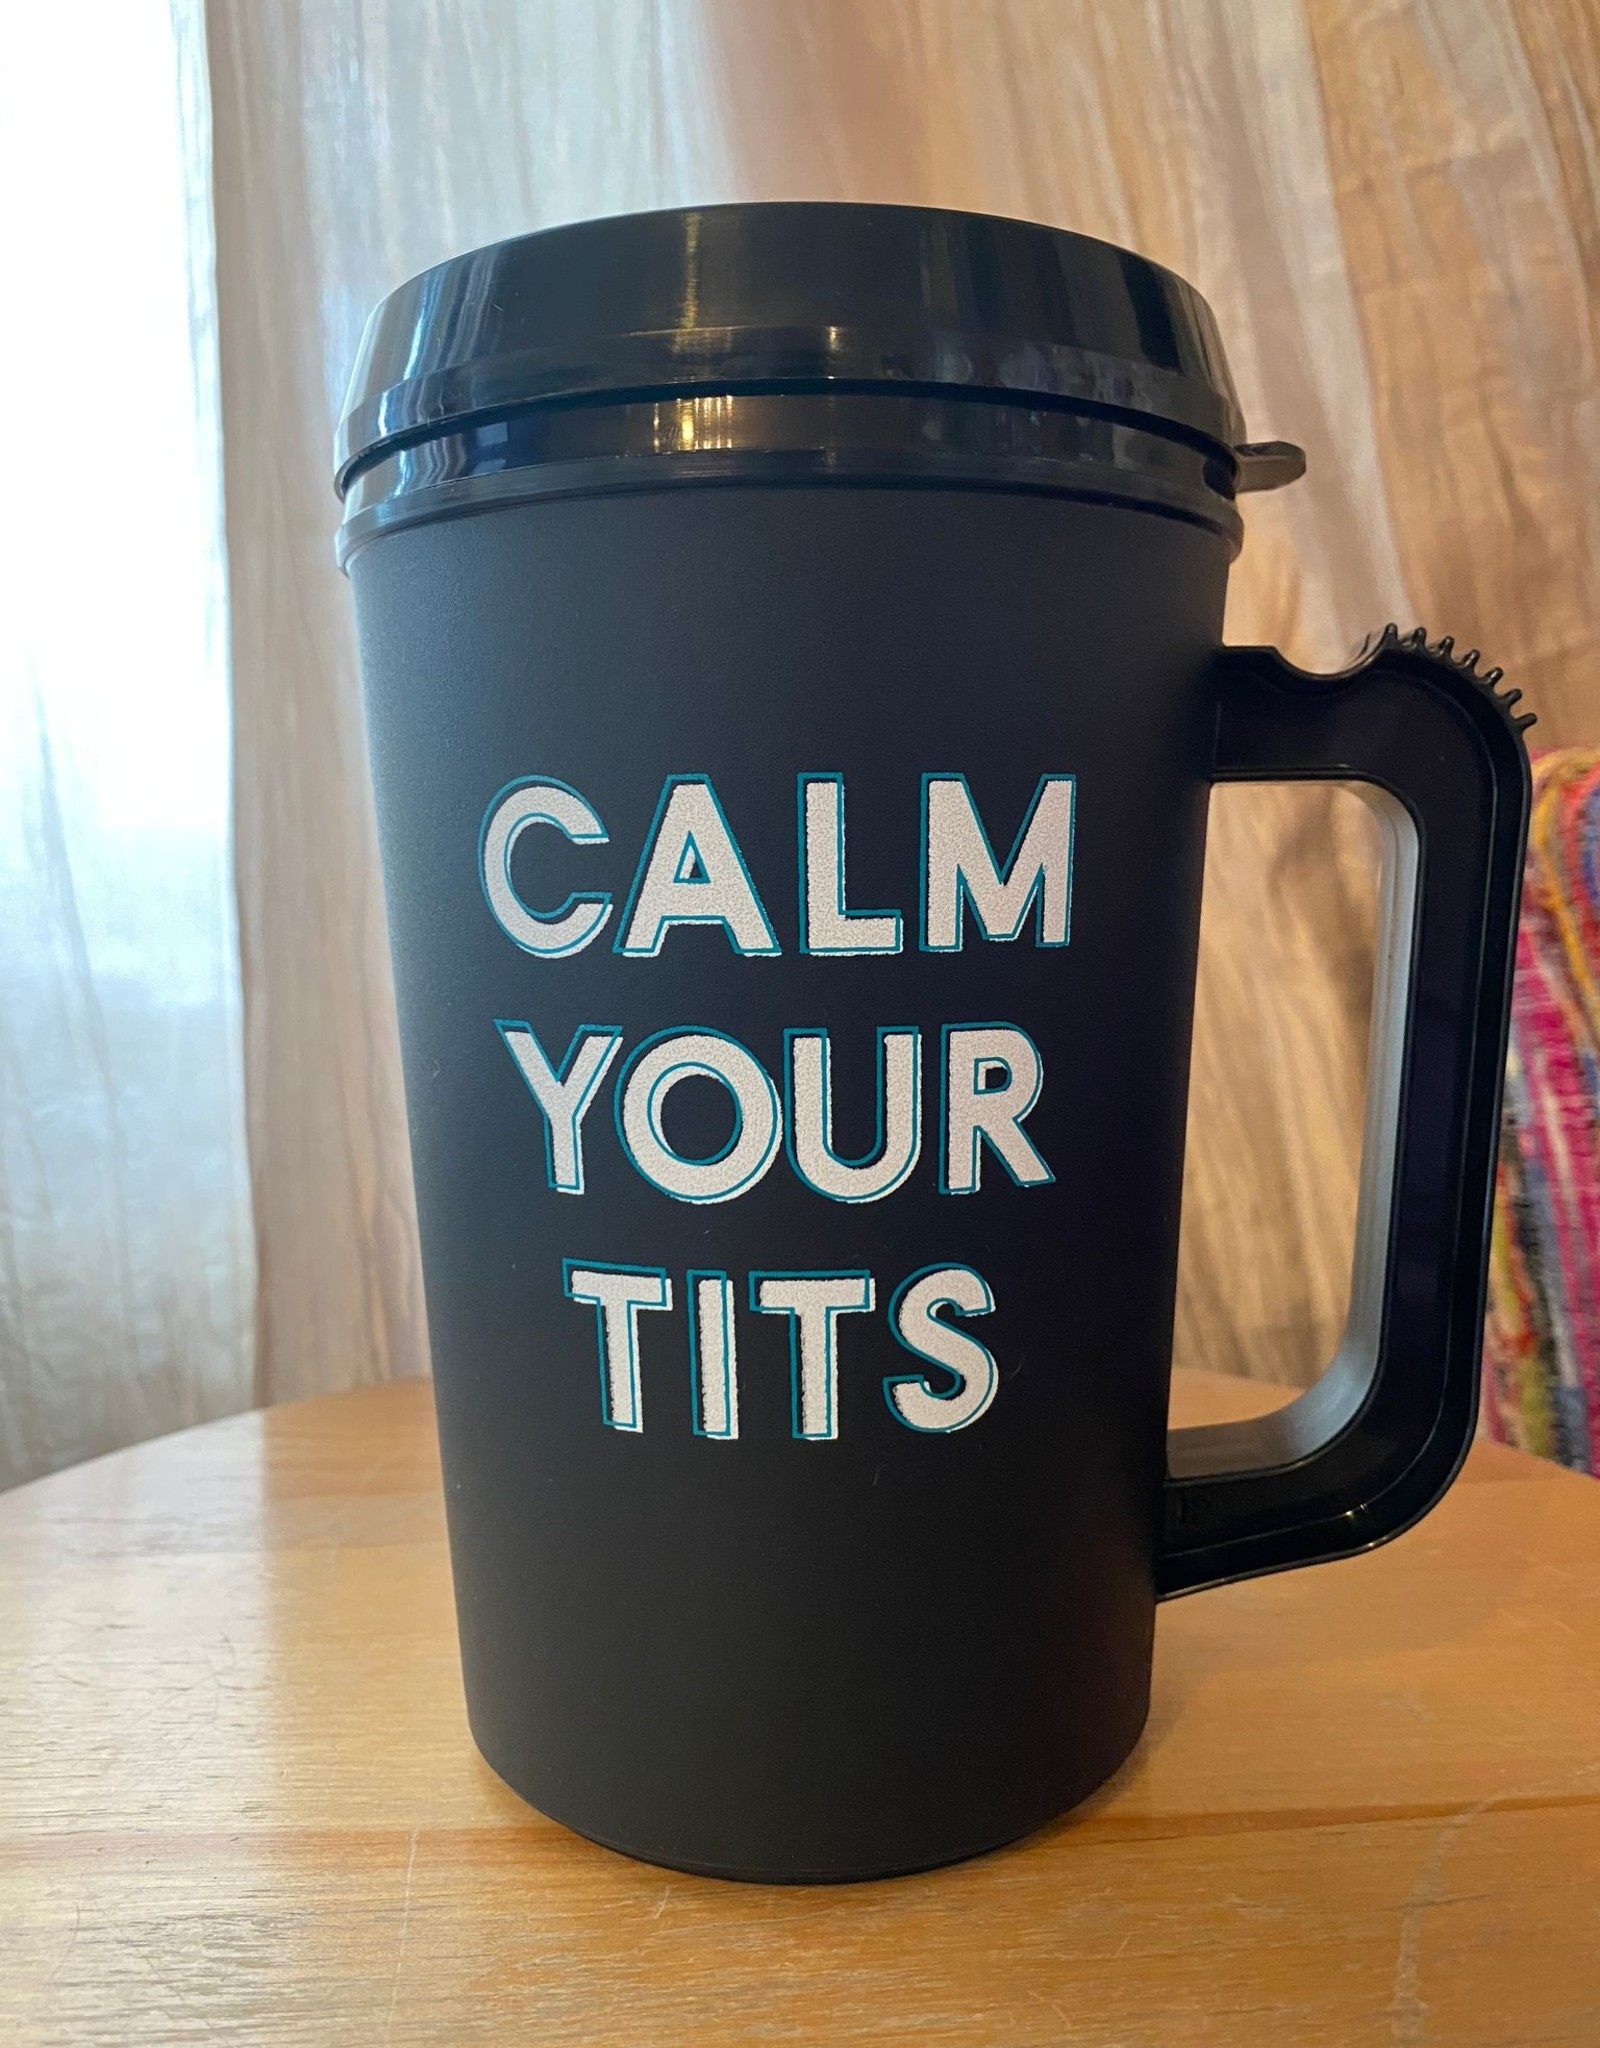 Wink Calm Your Tits Thermal Insulated Cup